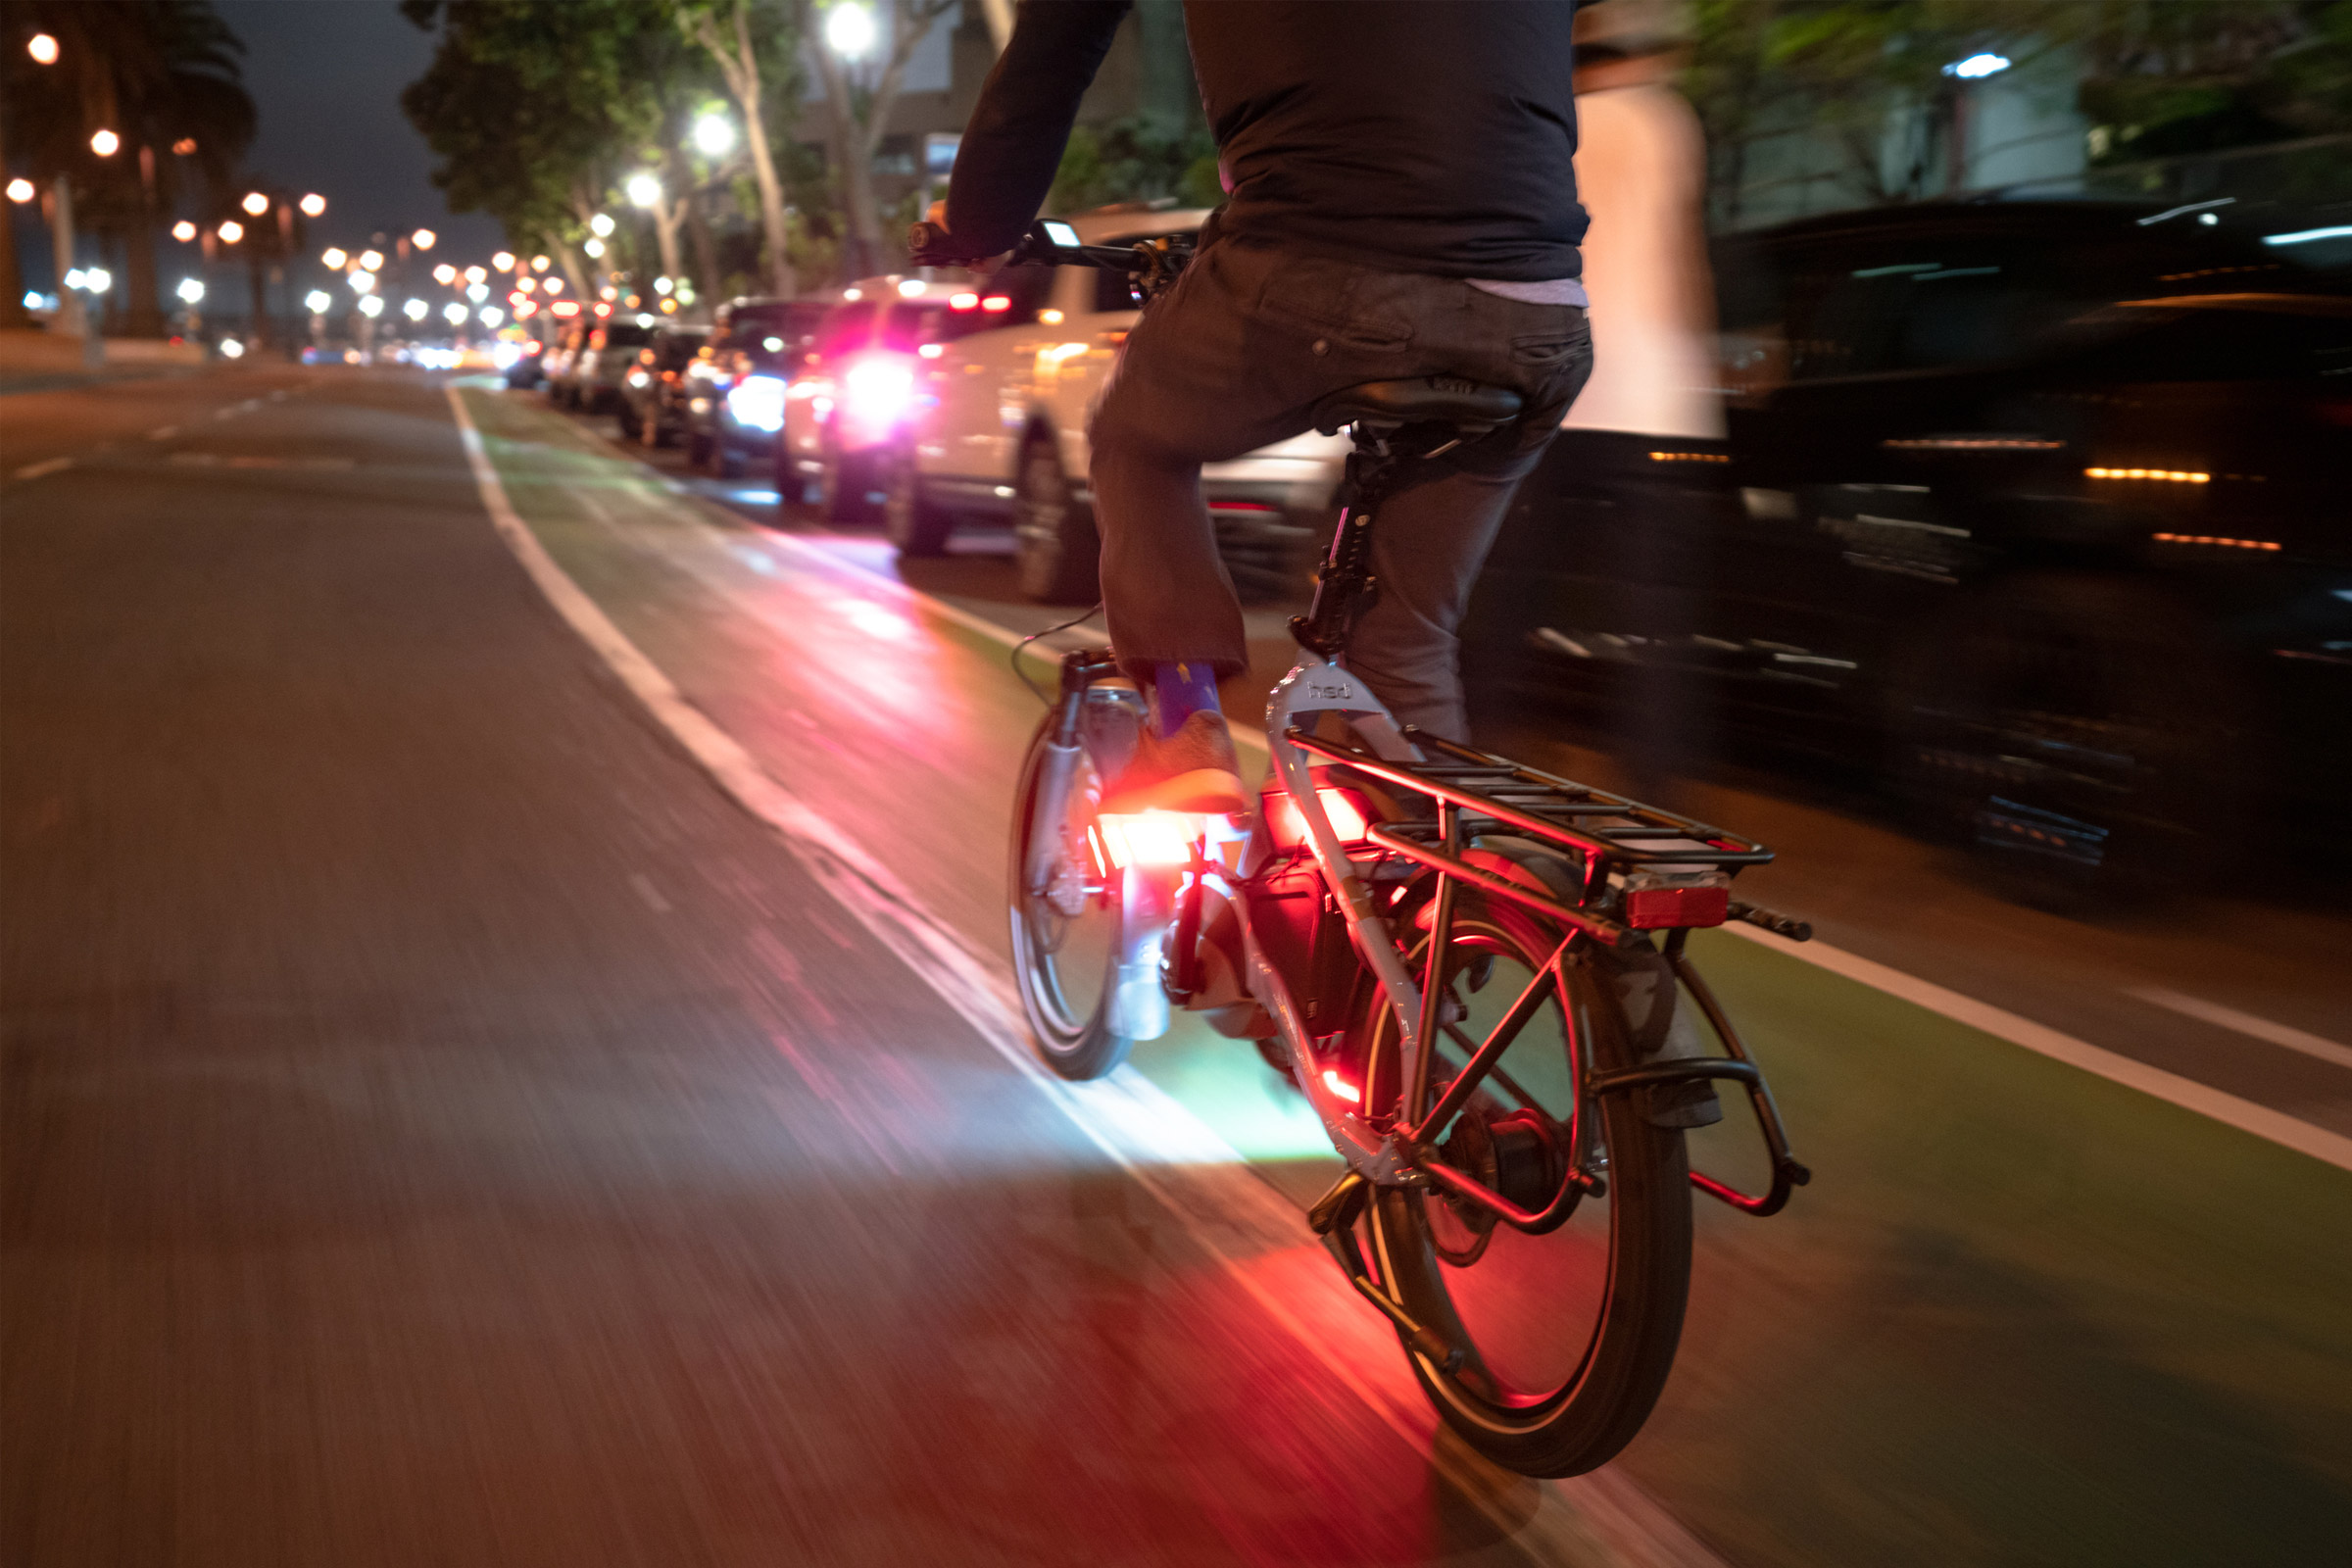 Redshift's LED Arclight Pedals - safety